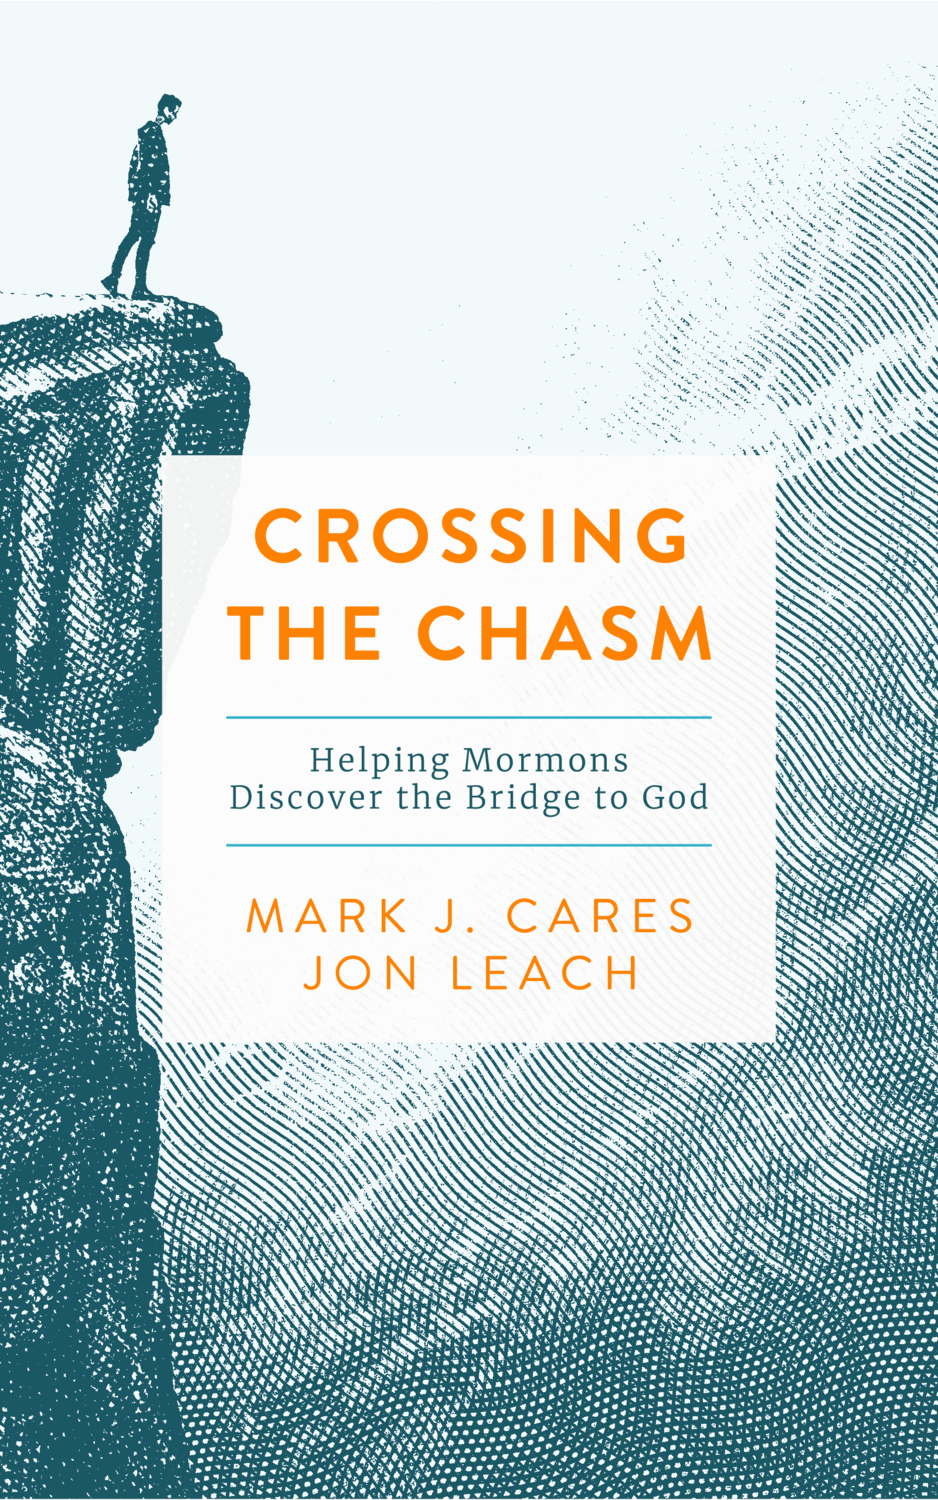 Digital Version:  Crossing the Chasm (EPUB format for an e-reader)